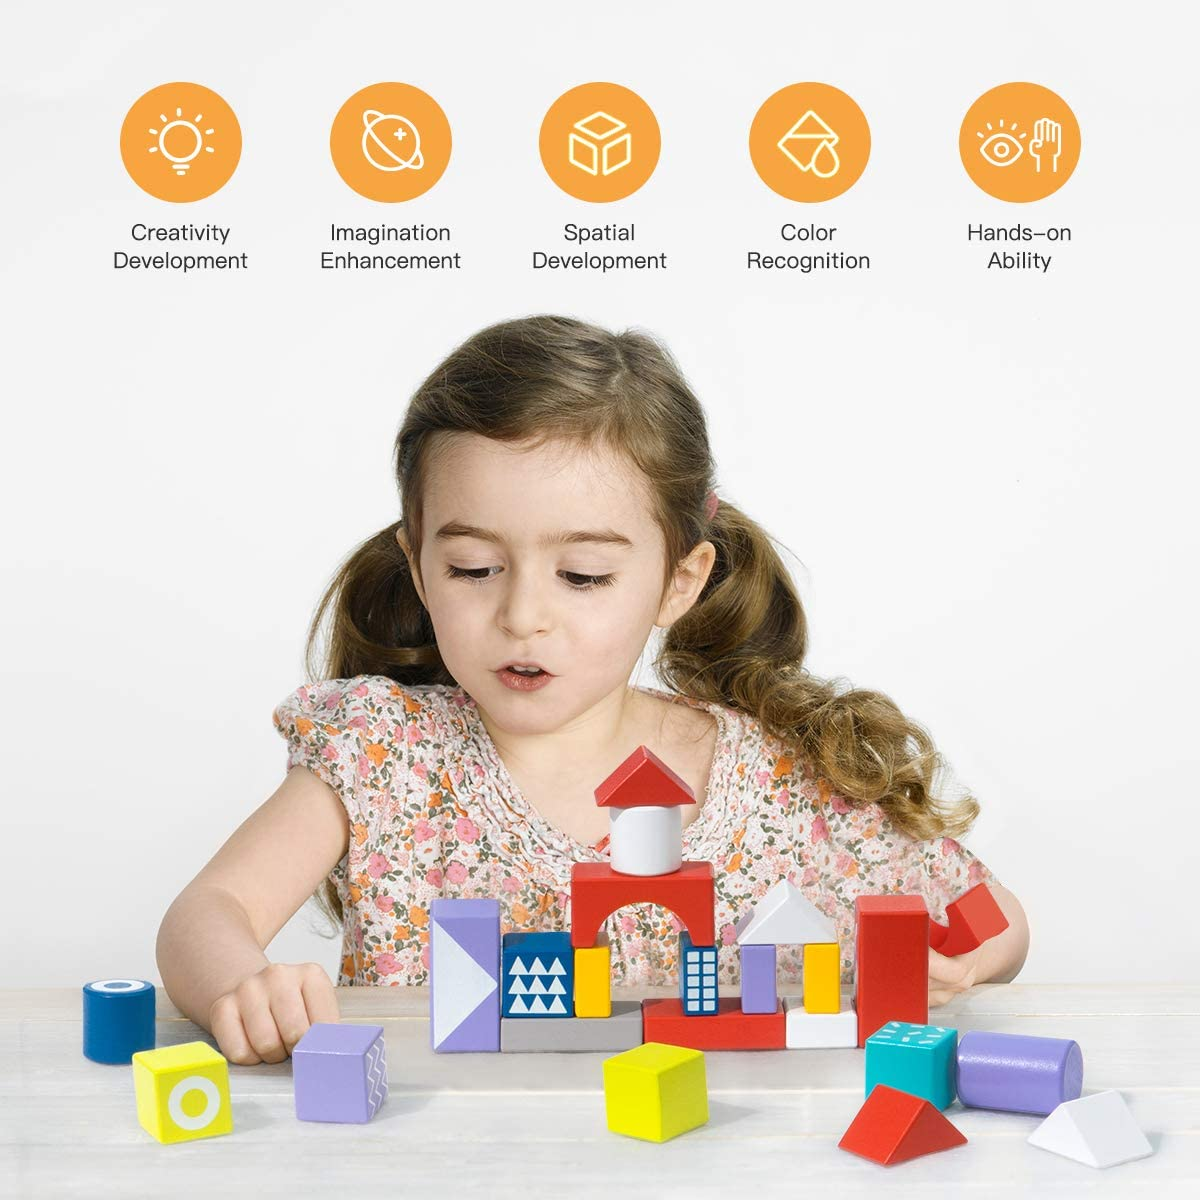 ROBUD Wooden Building Blocks Set for Toddlers Kids Stacking Toy Gift for Boys and Girls Ages 1-8 Years Old 100 PCS